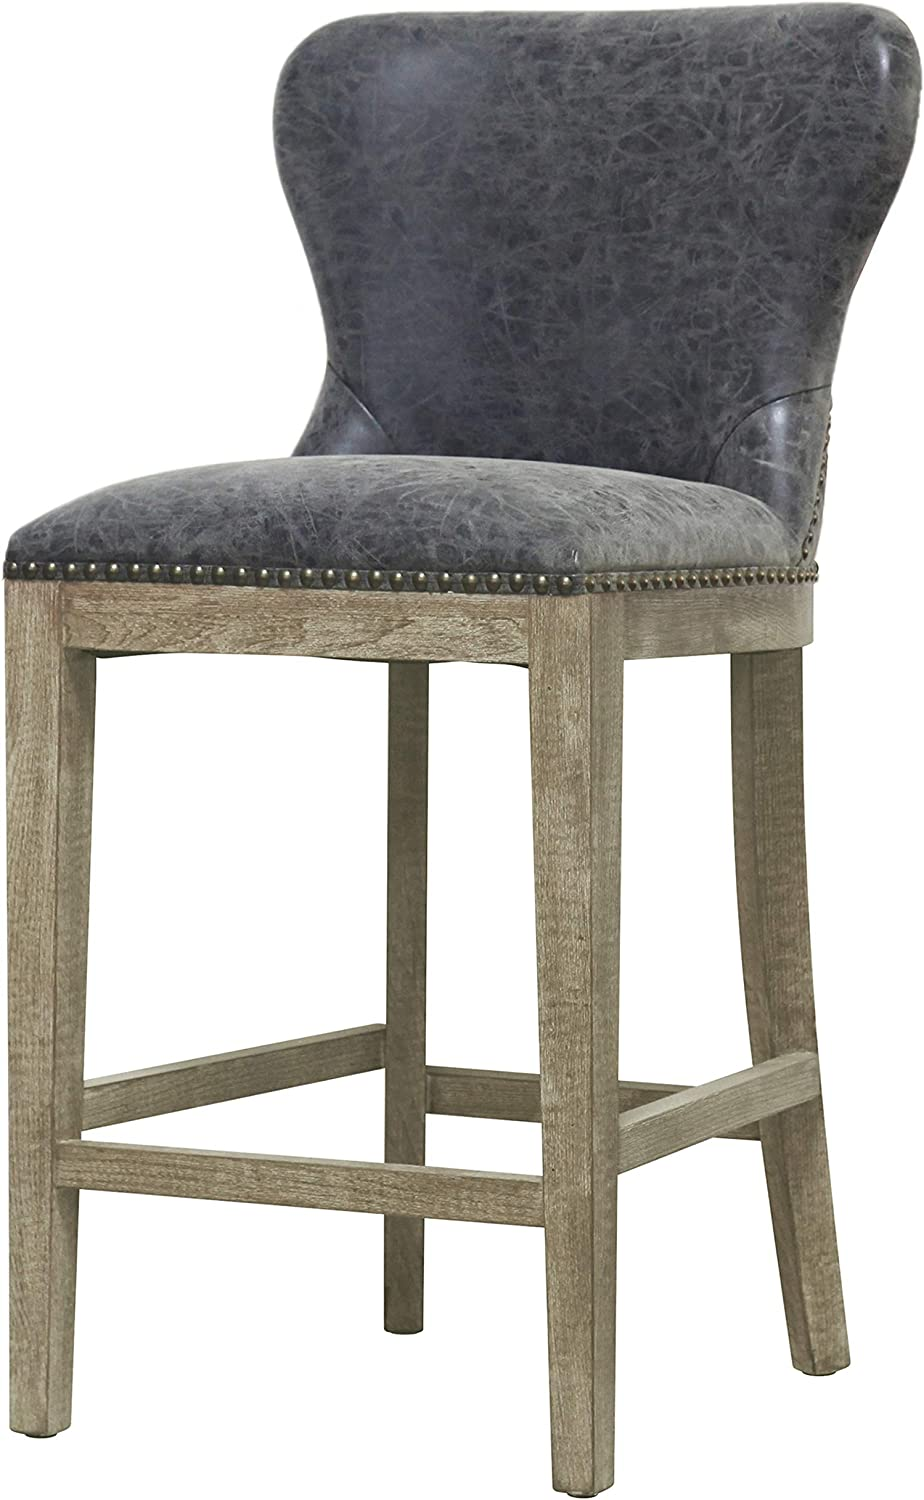 New Pacific Direct Dorsey Counter Bar Counter Stools, Nubuck Charcoal